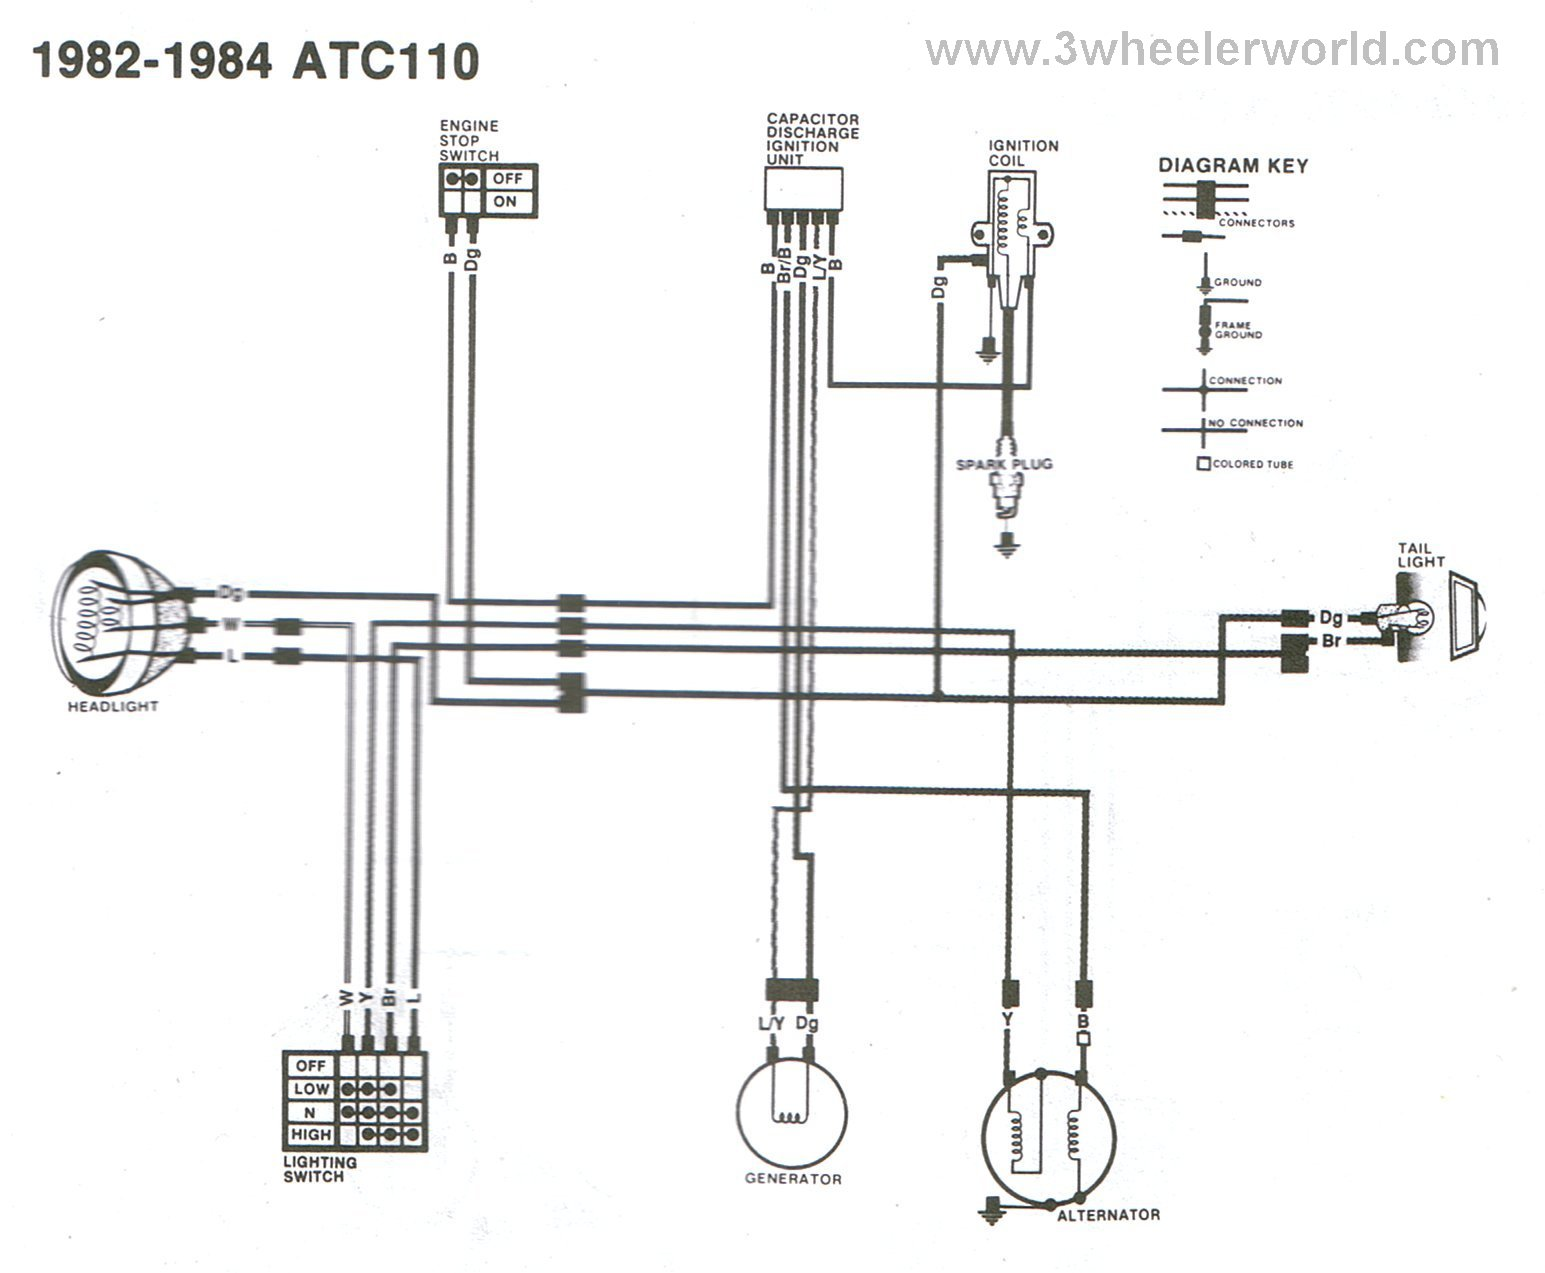 ATC110x82Thru84 3 wheeler world tech help honda wiring diagrams honda xrm 110 engine wiring diagram at readyjetset.co